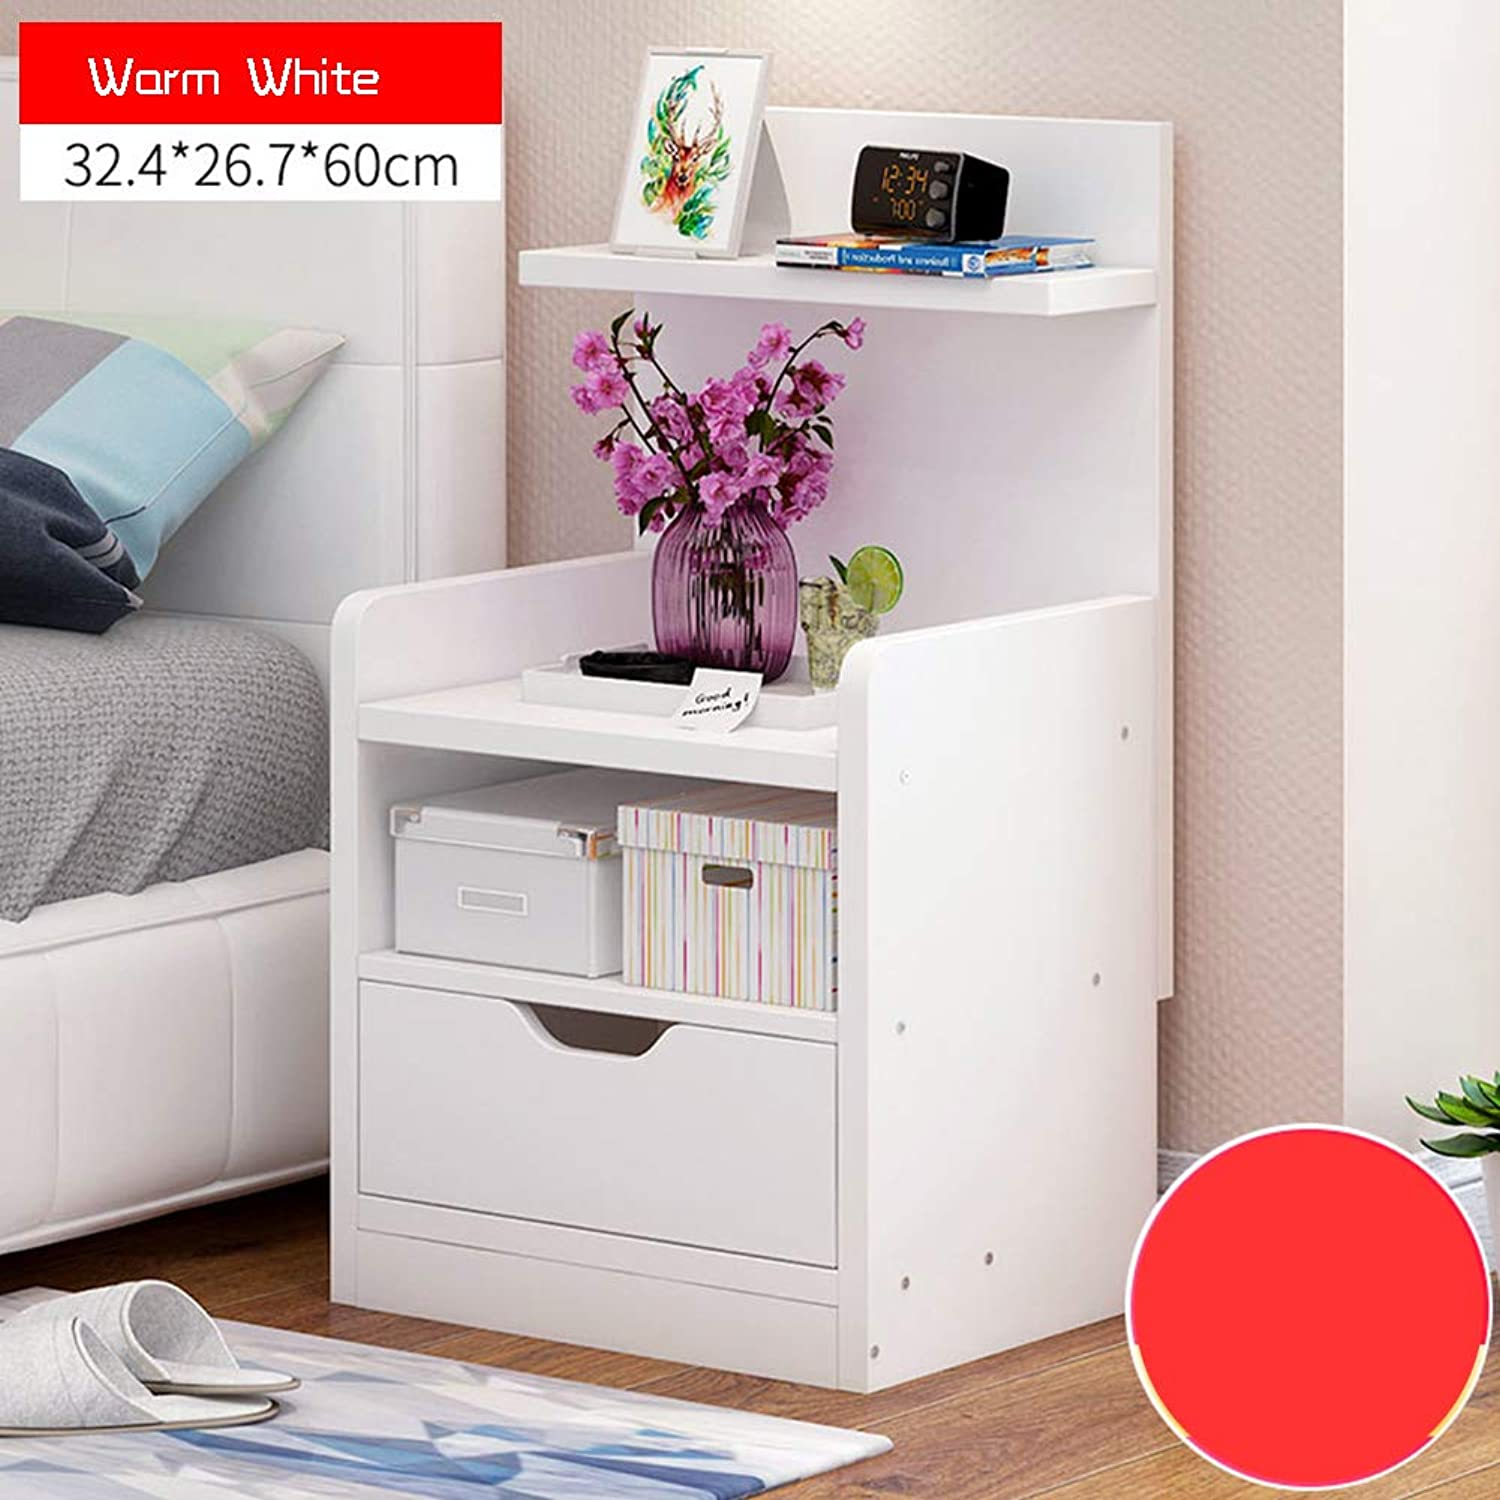 Coffee Table Bookcase, Tree Type Double Drawer Implicit Form Handle Partition Storage Used for Student Dormitory Study 3 colors (color   Wram White)